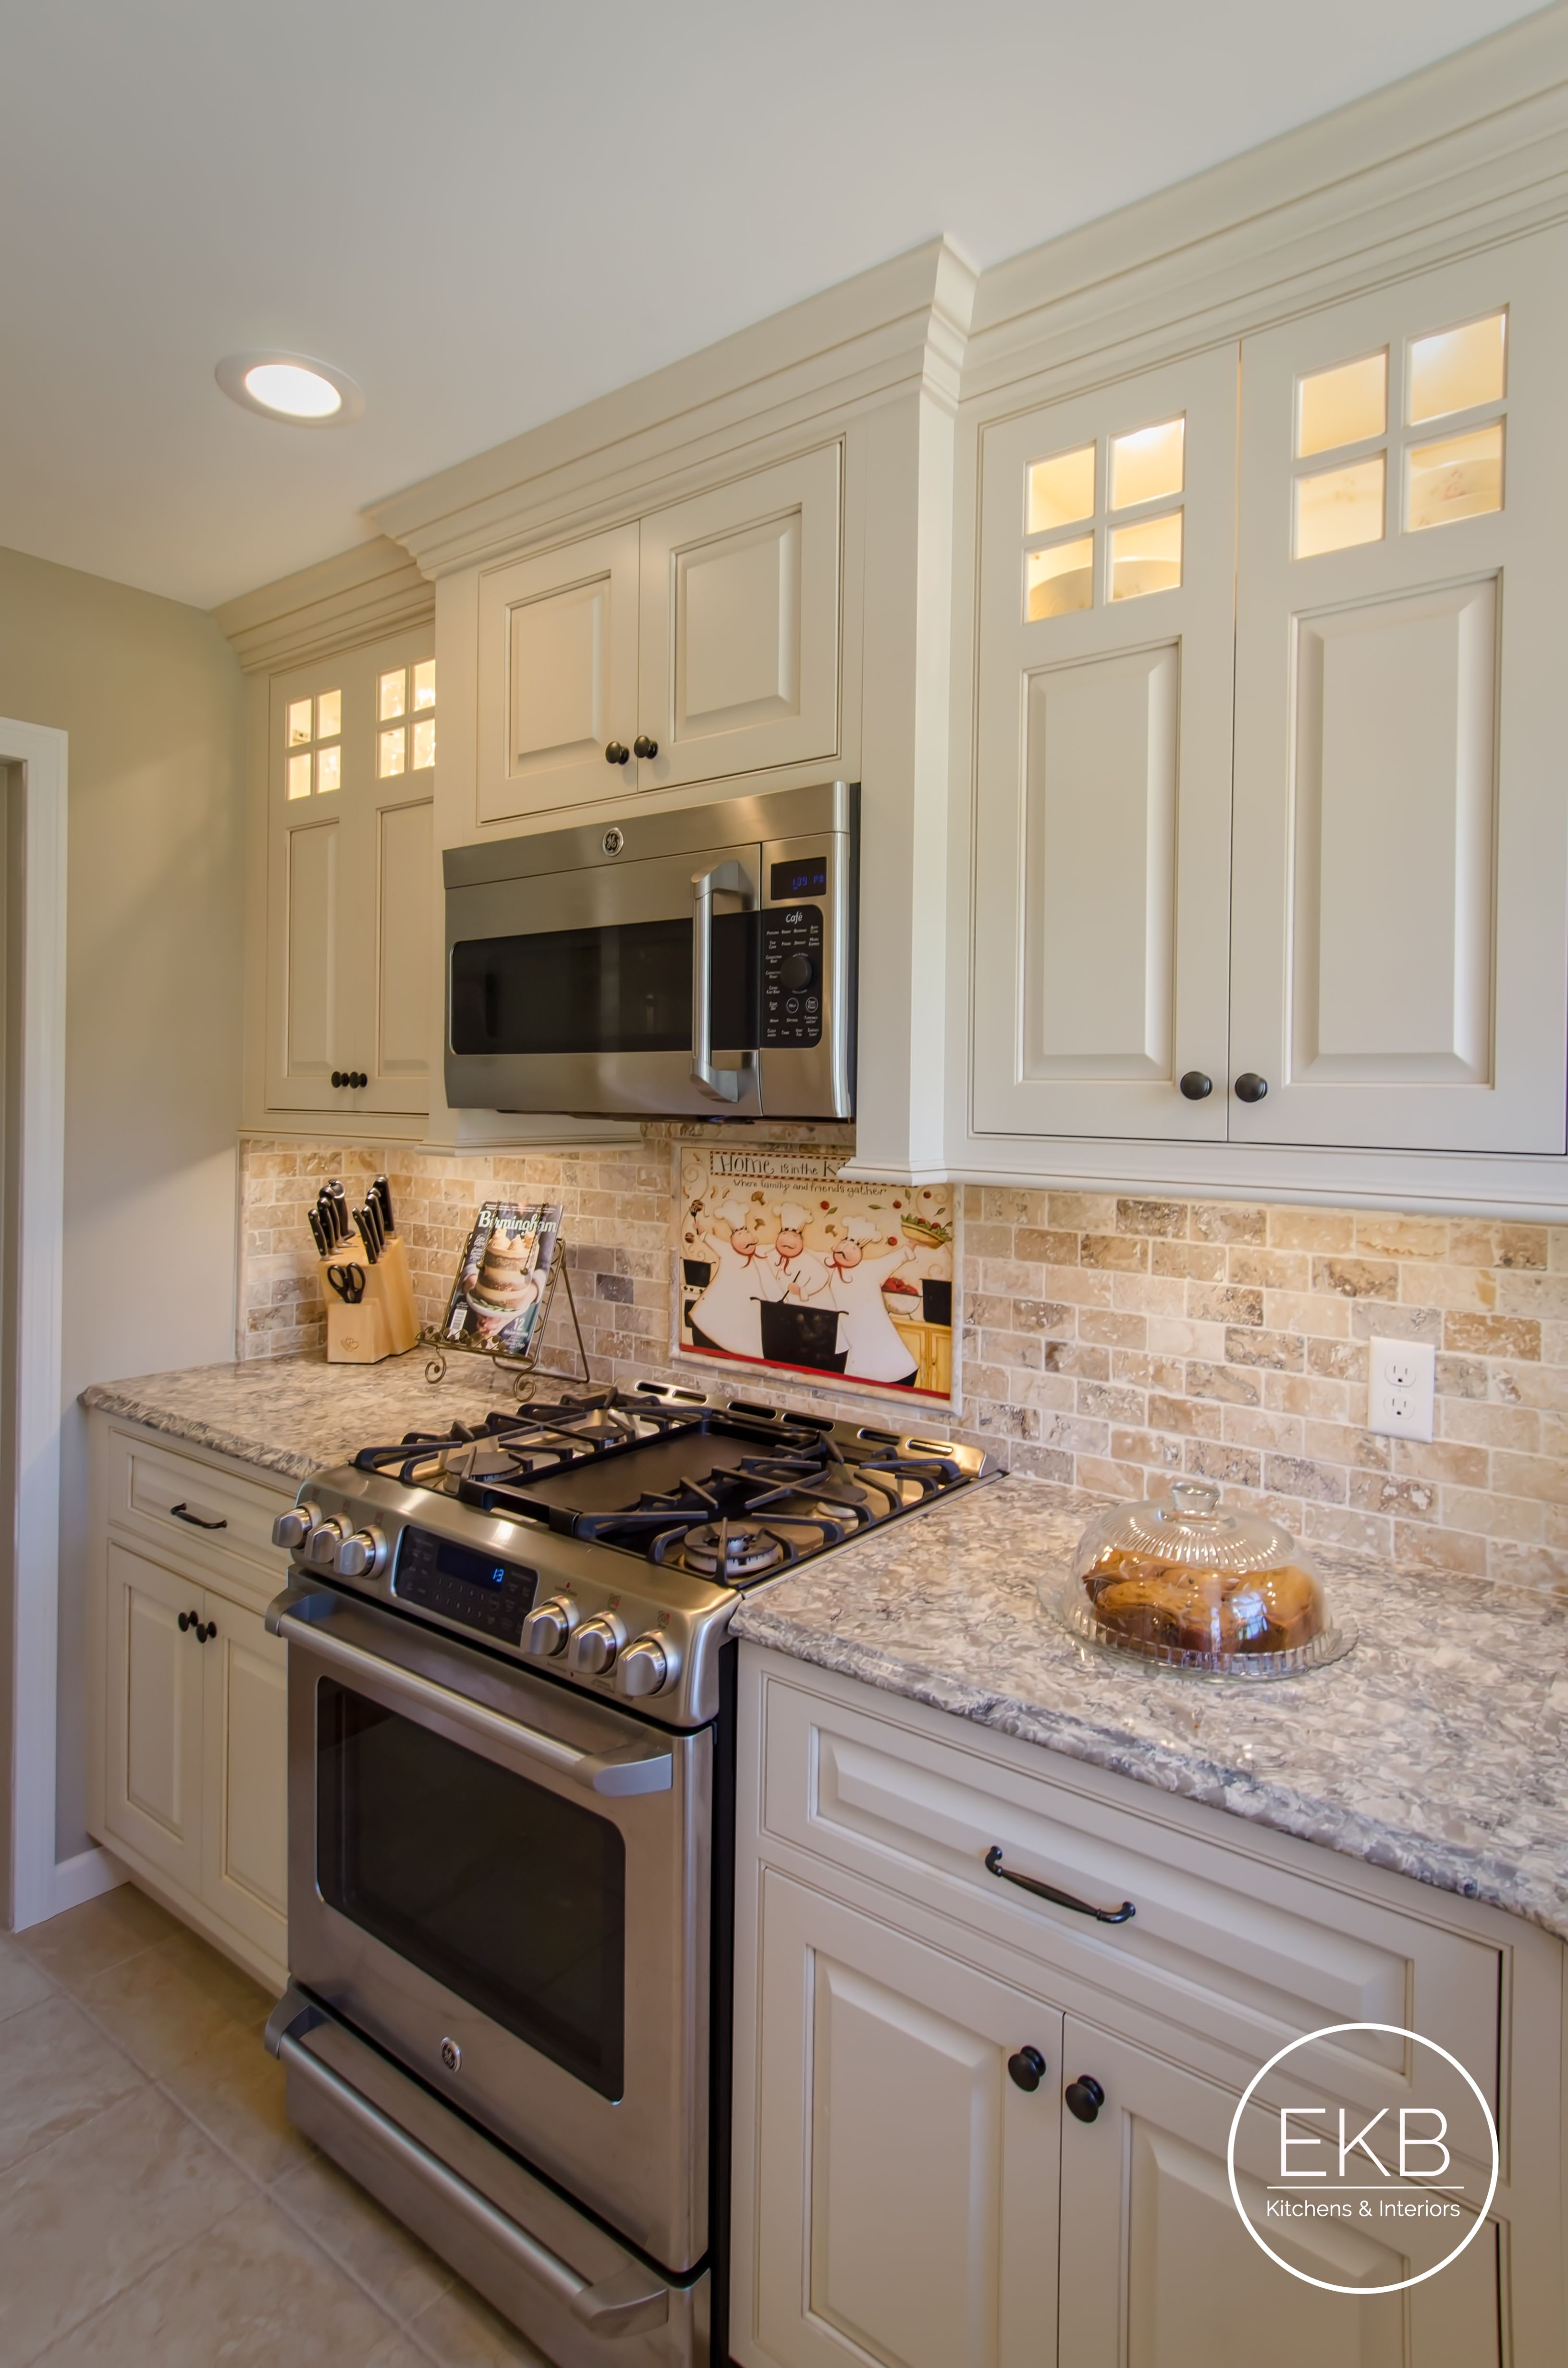 Shiloh Maple Cabinets In Eggshell With A Cafe Glaze And